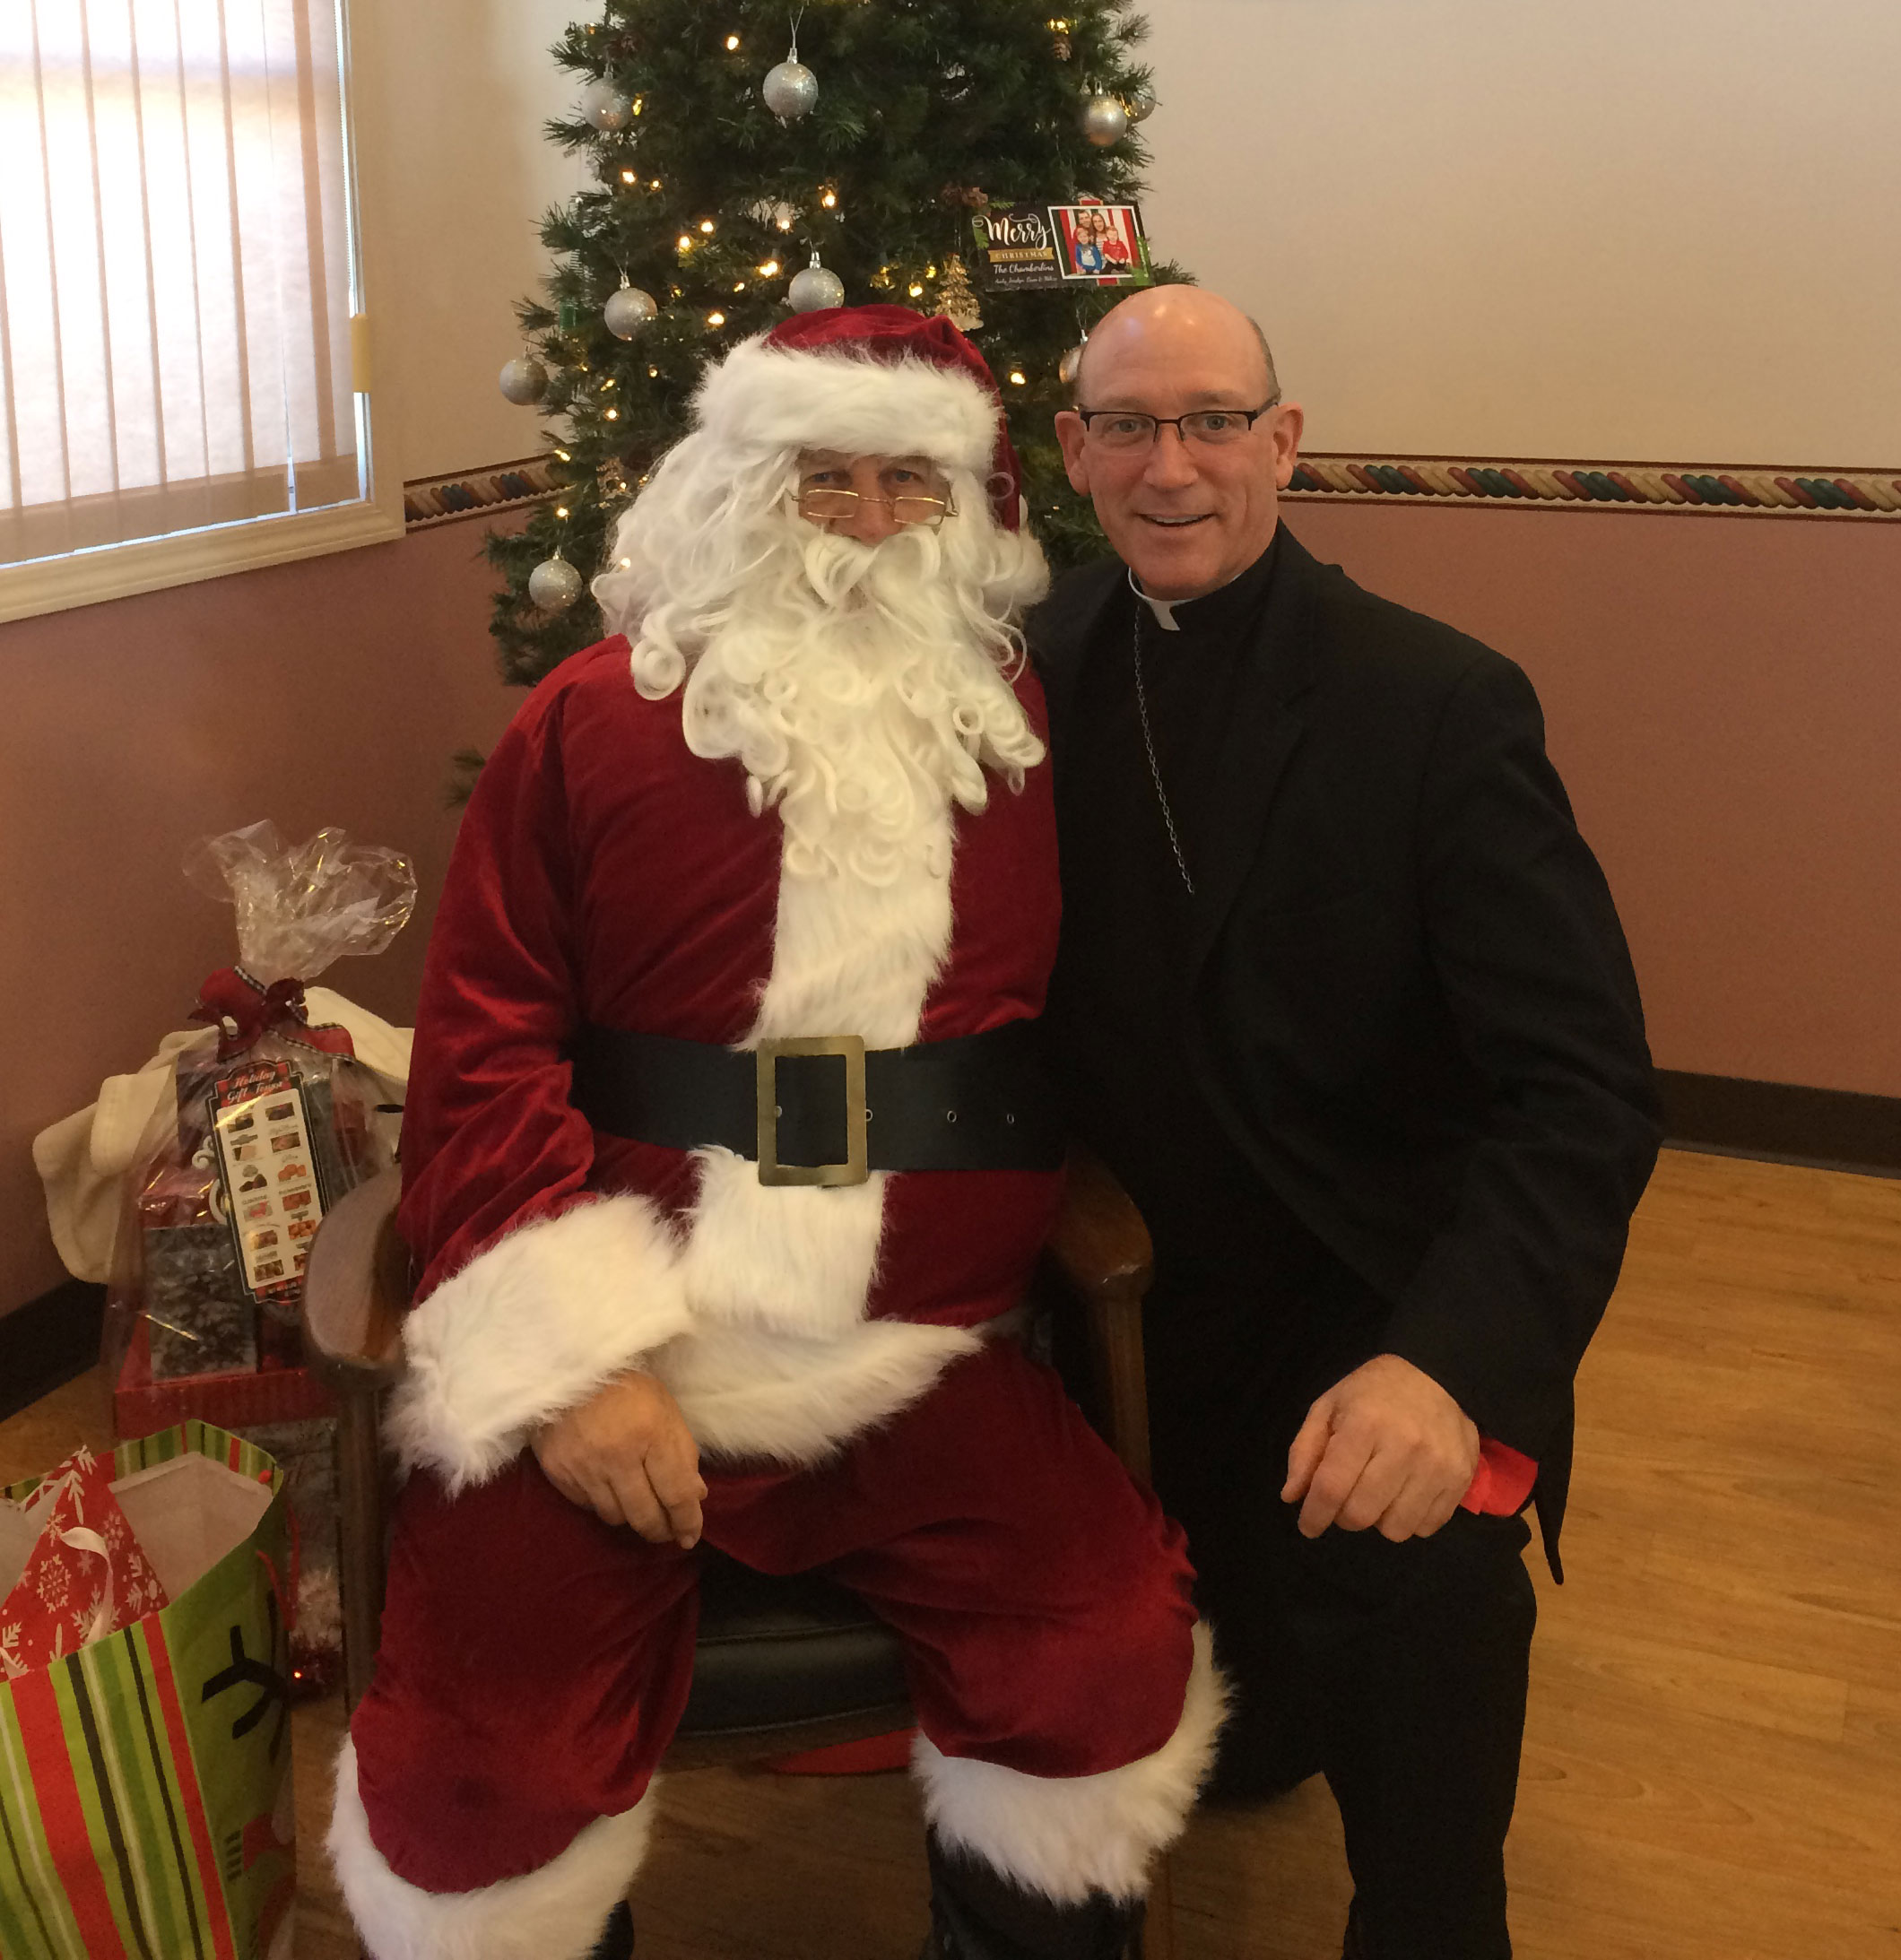 SANTA VISIT--Santa stopped in at Queen of Angels daycare to see the children. Bishop Rice helped pass out treats and gifts for the youth Dec. 20 before the Christmas Pageant under the direction of the Congregation of Mary, Queen. (The Mirror)